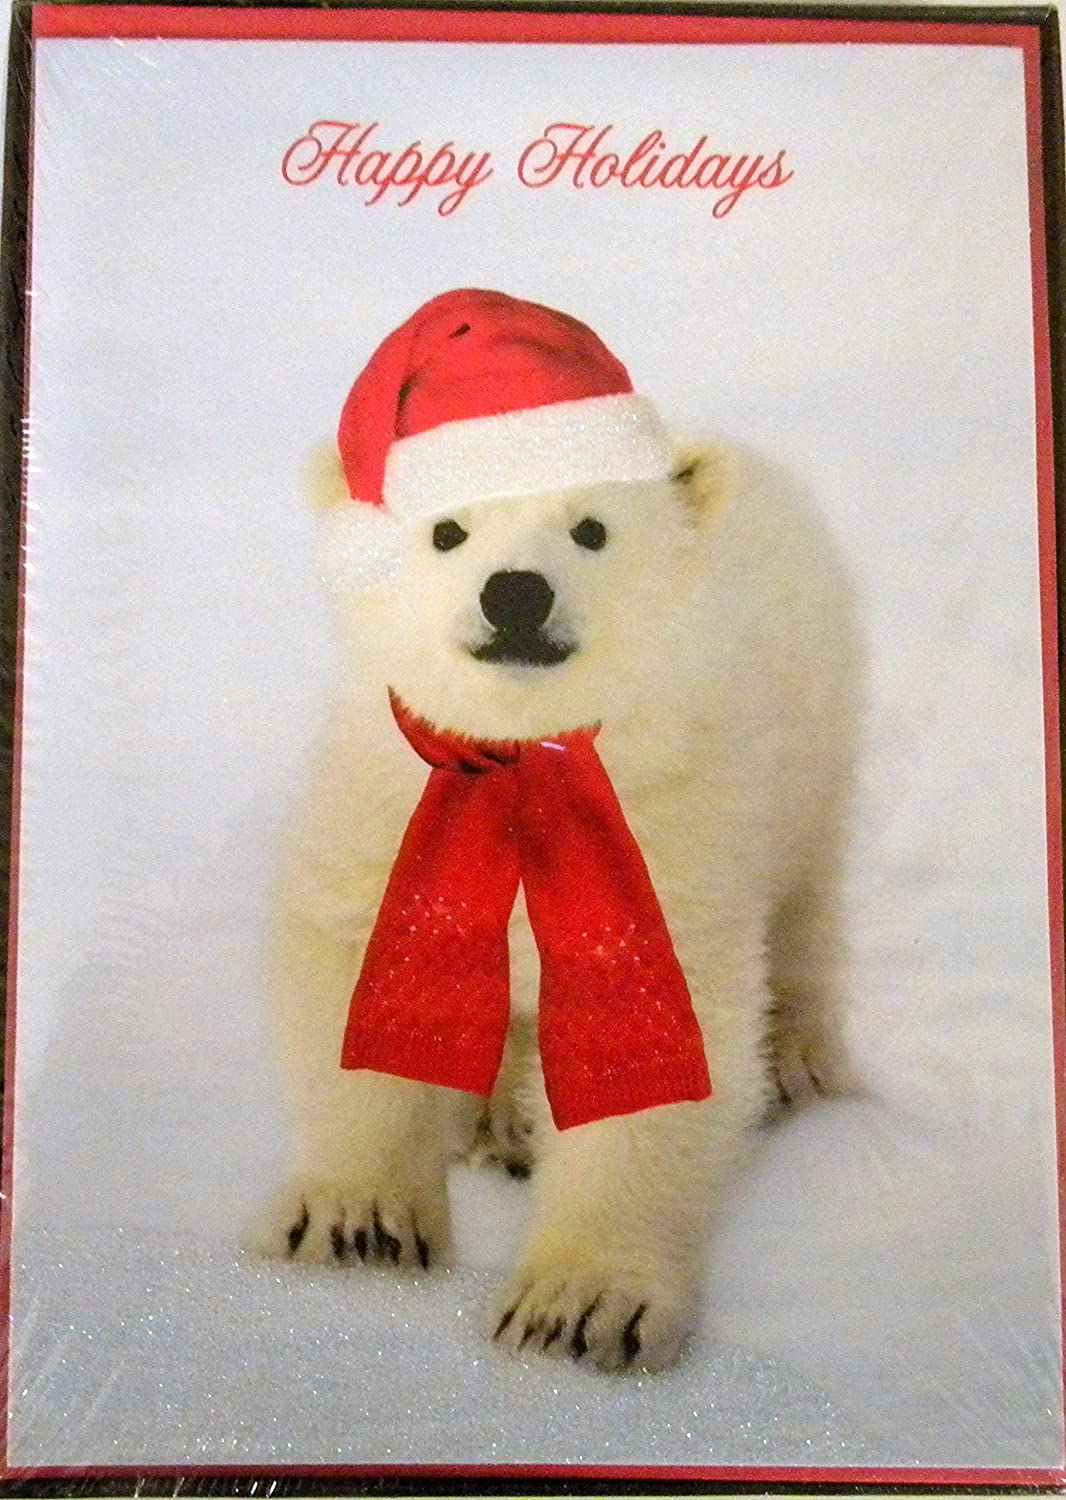 National Geographic Christmas Cards.Amazon Com National Geographic Polar Bear Christmas Cards